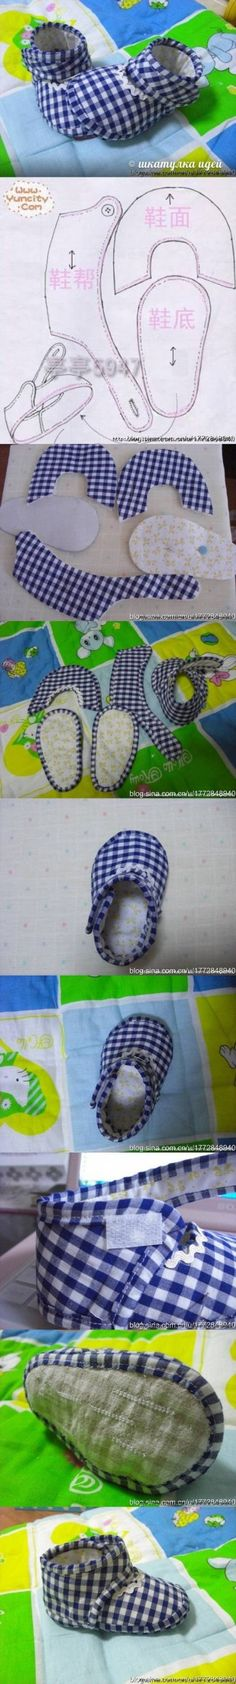 Do this with any design, here's the step by step http://www.usefuldiy.com/diy-fleece-booties/